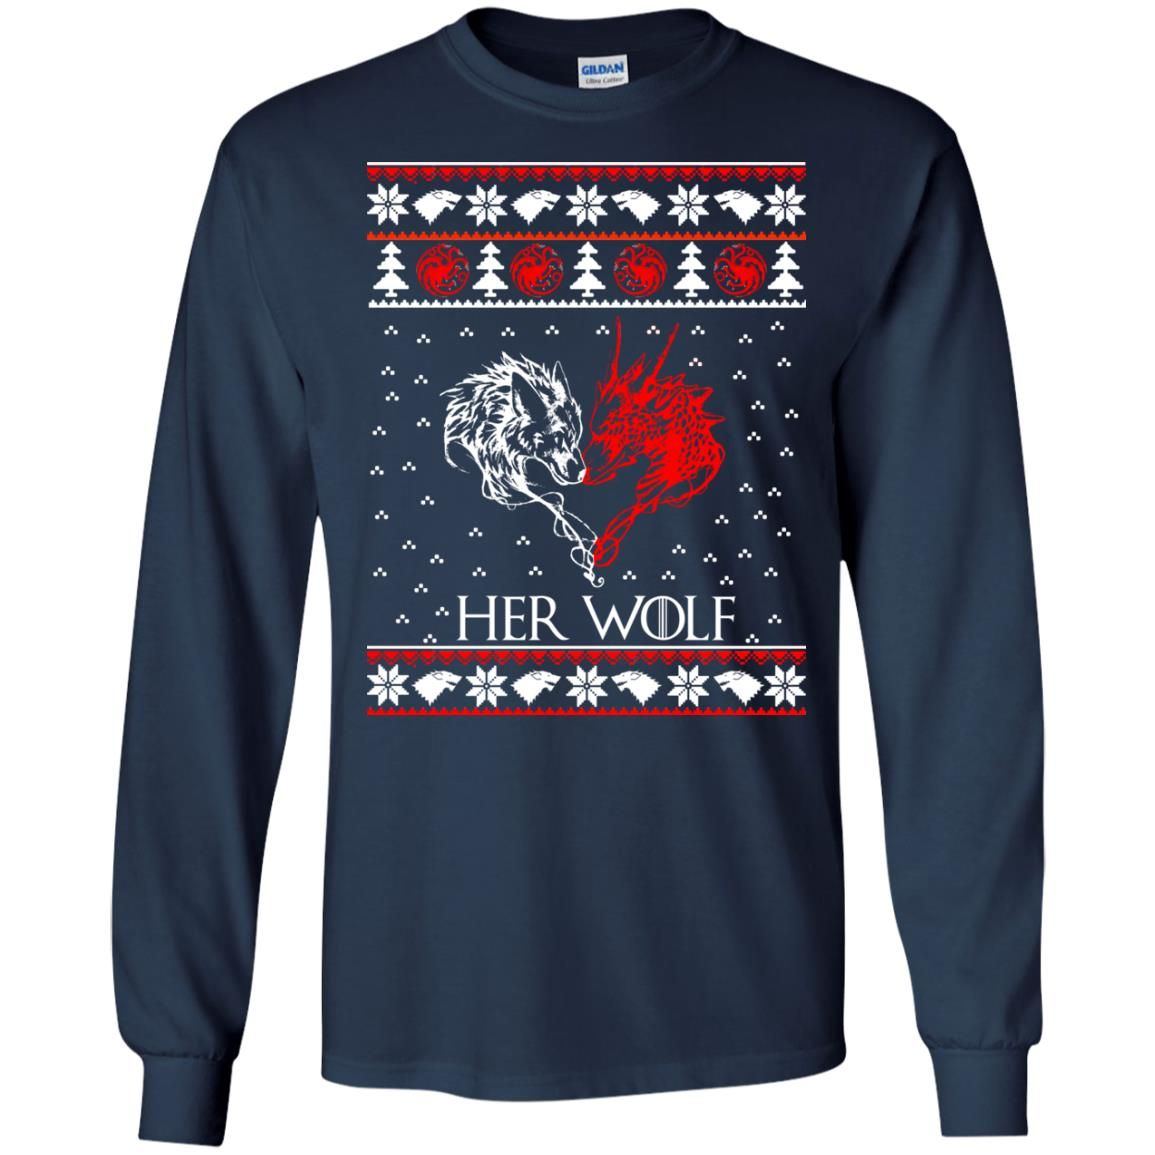 image 793 - Game of Thrones: Her Wolf Ugly Christmas Sweater, hoodie, shirt